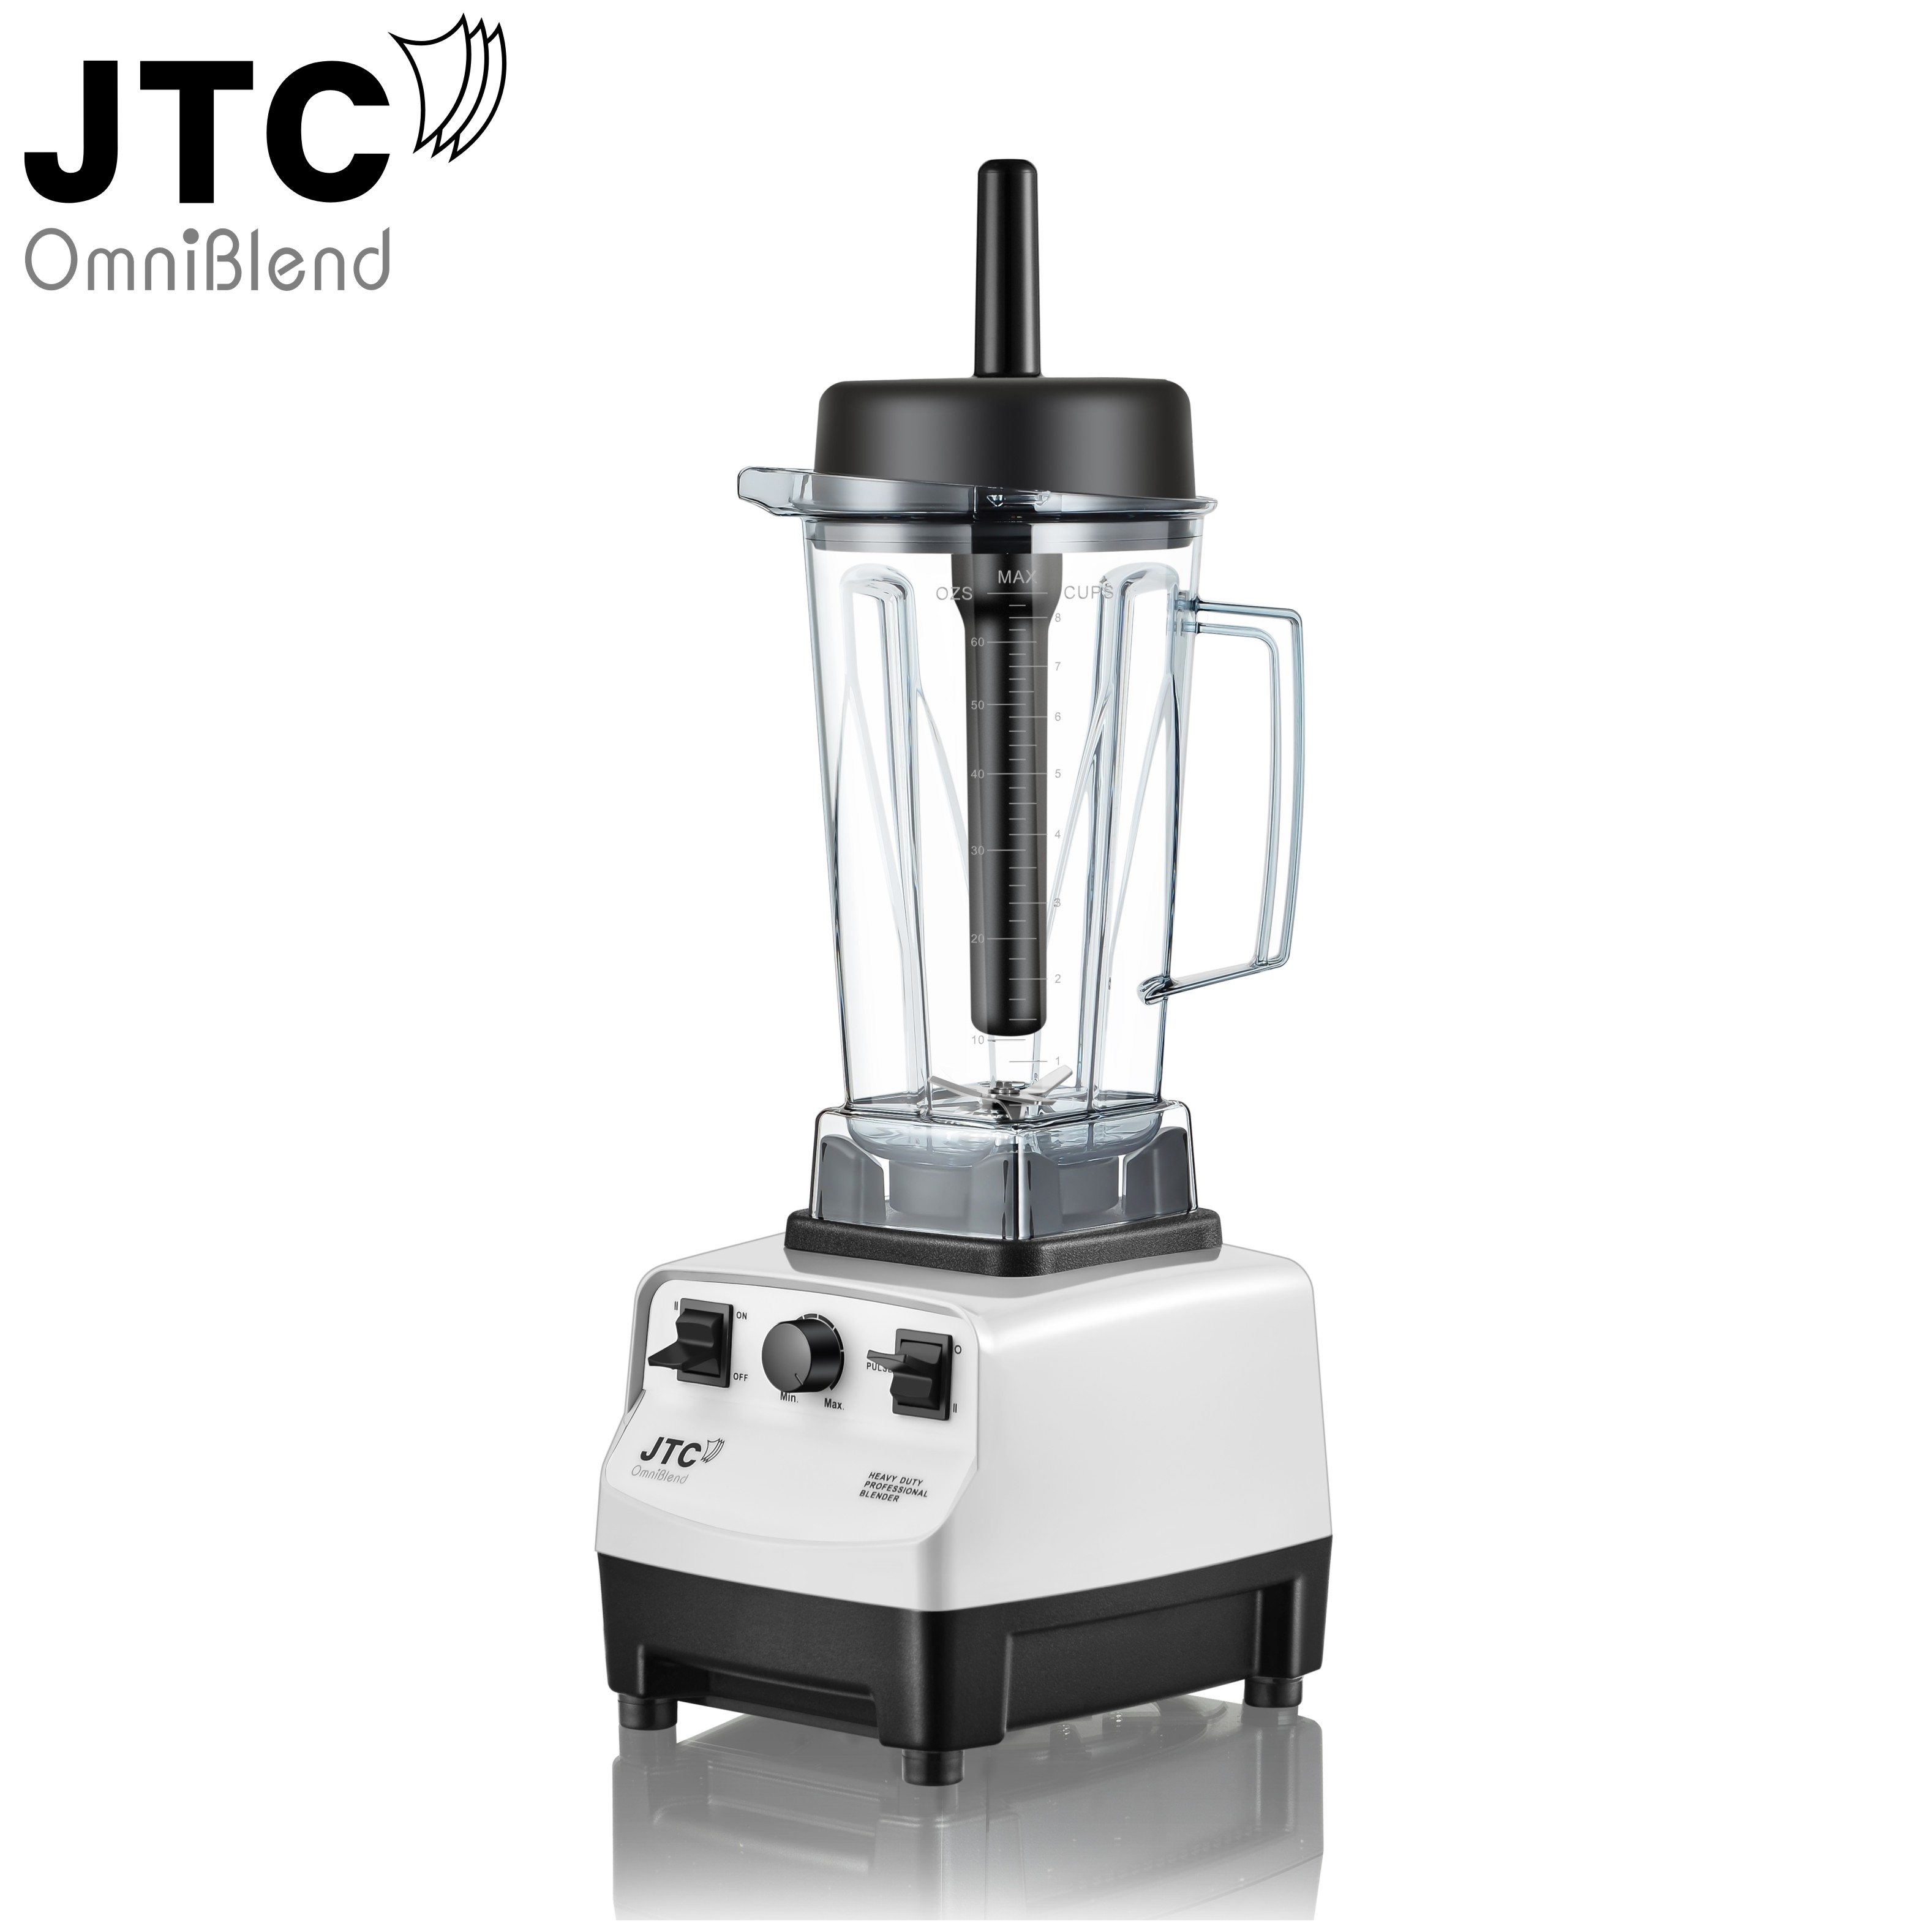 3HP Commercial Blender 2238W Heavy Duty Professional Blender Free Shipping 100% Guaranteed NO. 1 Quality In The World